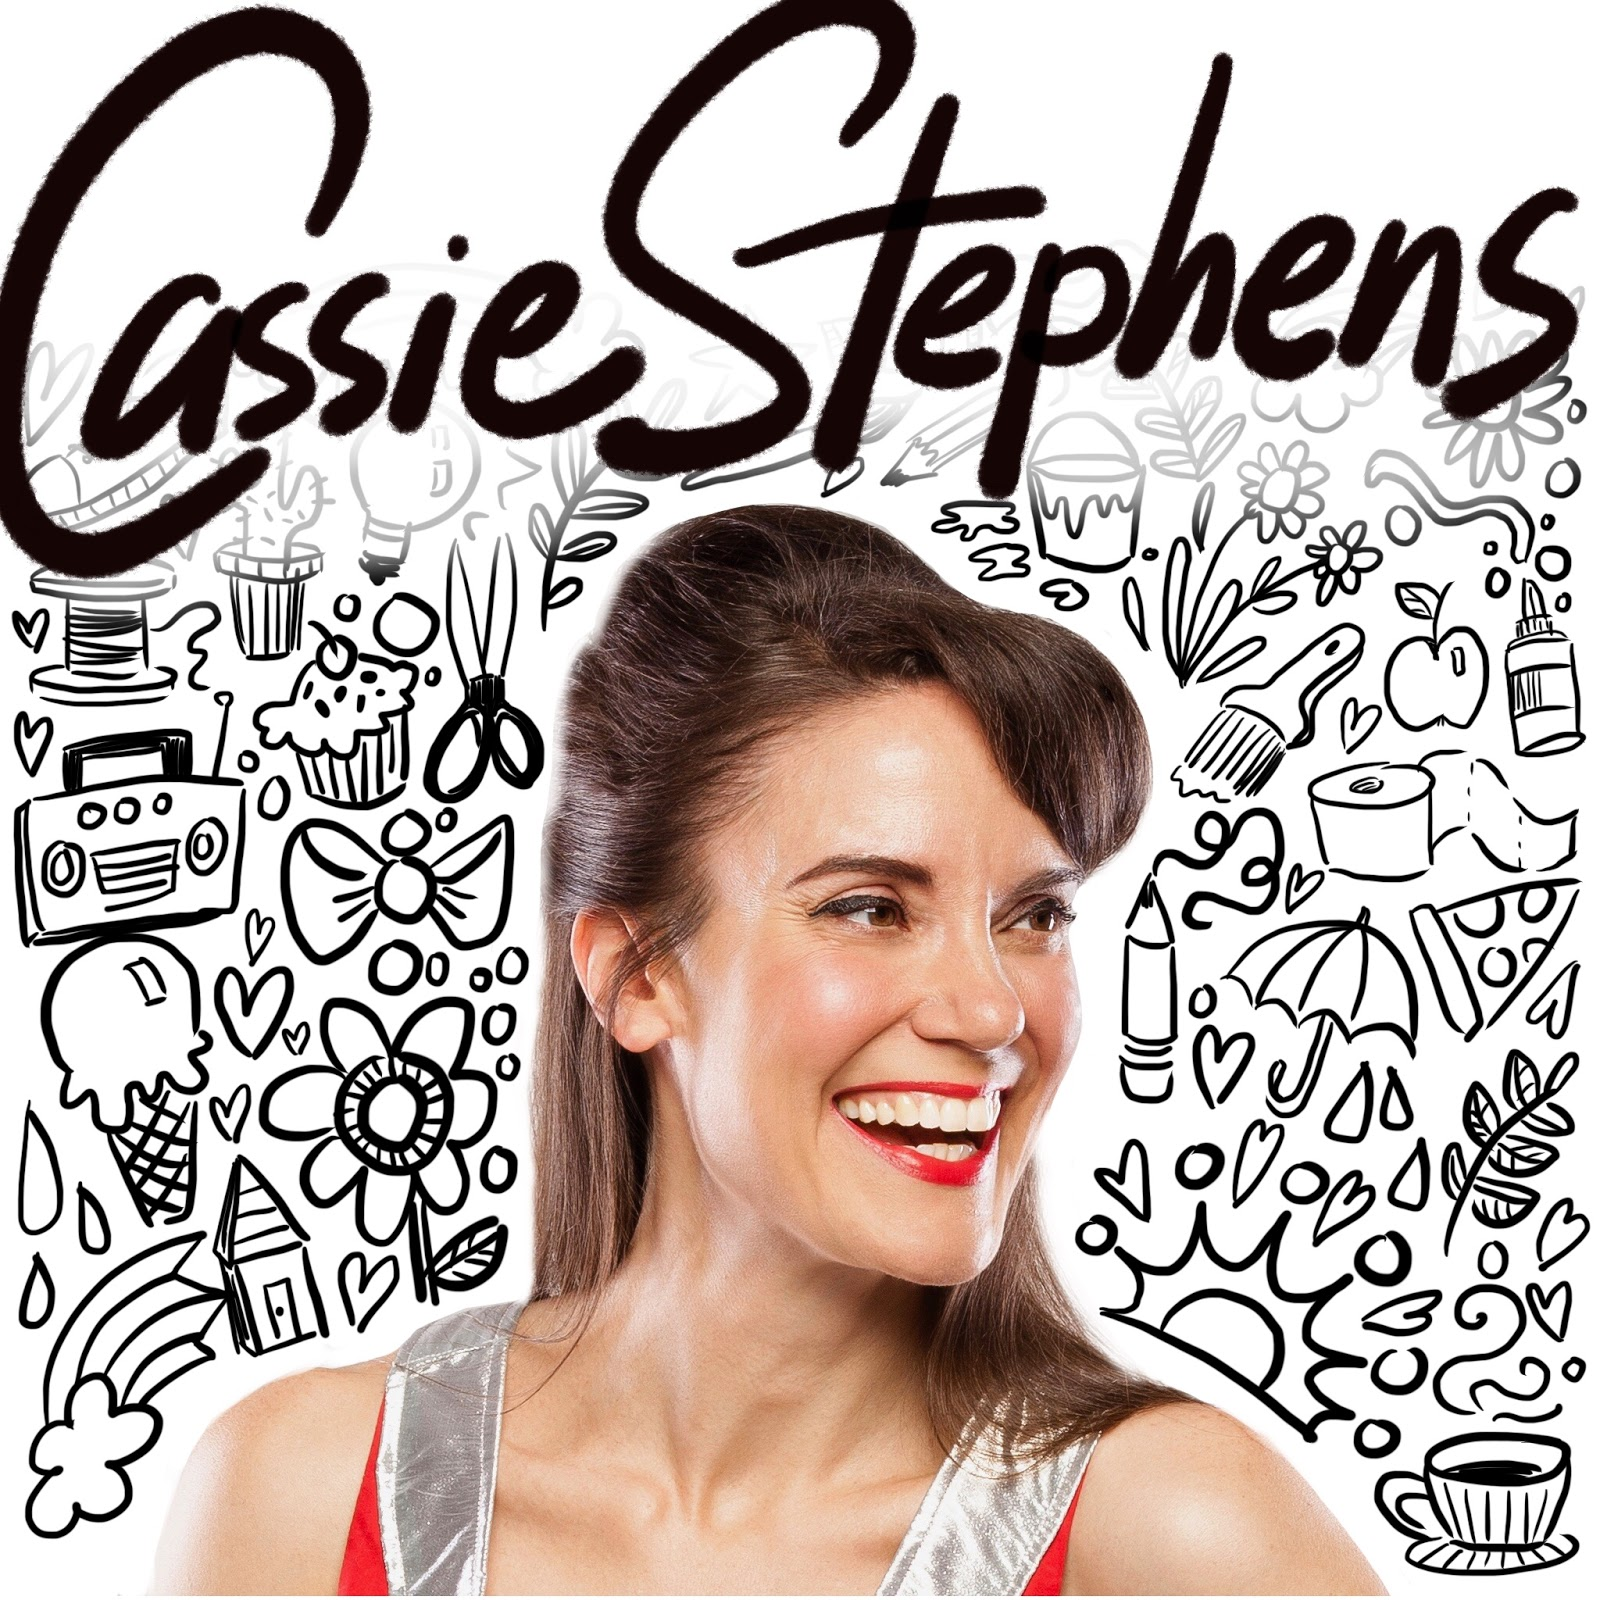 59f19aea7f9 Cassie Stephens Podcast!